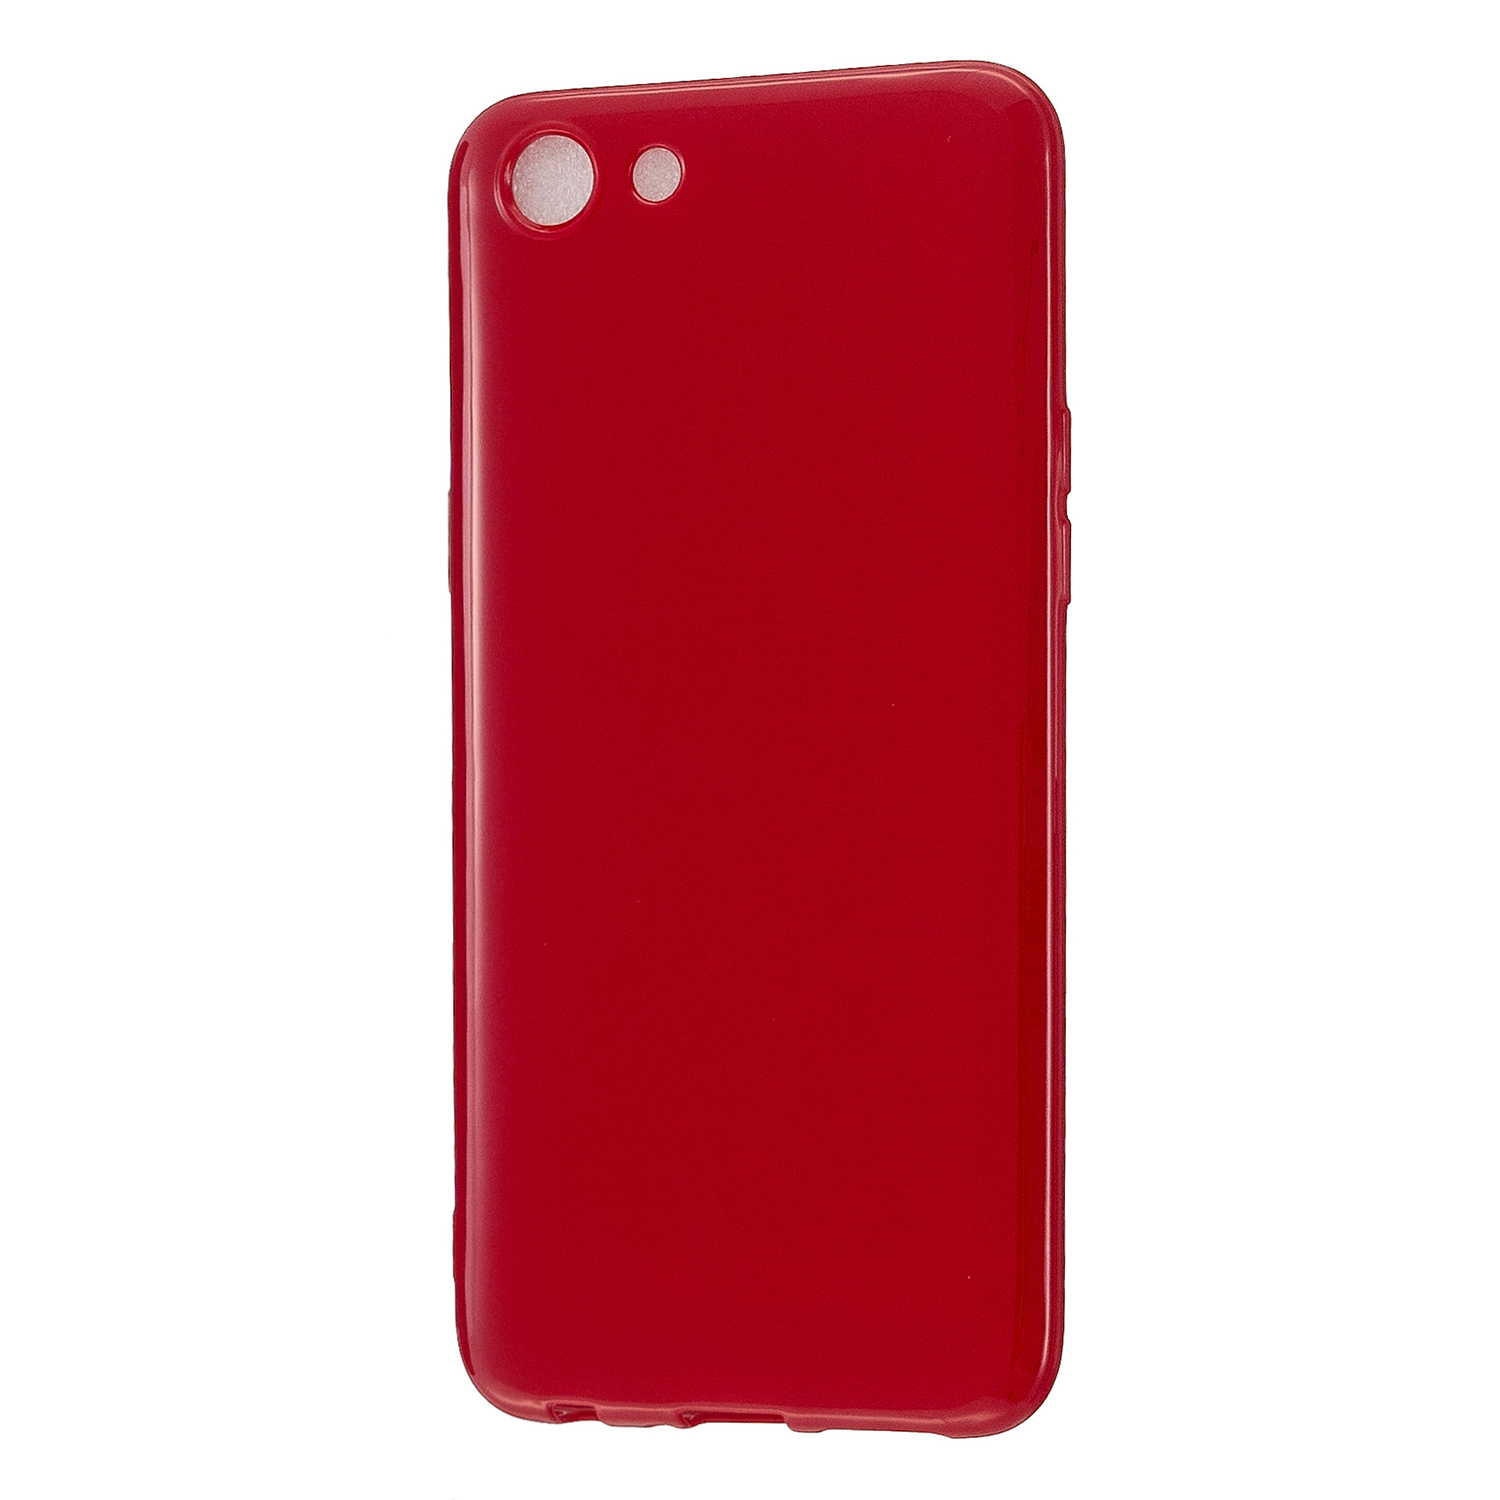 For VIVO Y67/Y71 Cellphone Cover Glossy TPU Phone Case Anti-Dust Stain-proof Easy Install Screen Protector Rose red